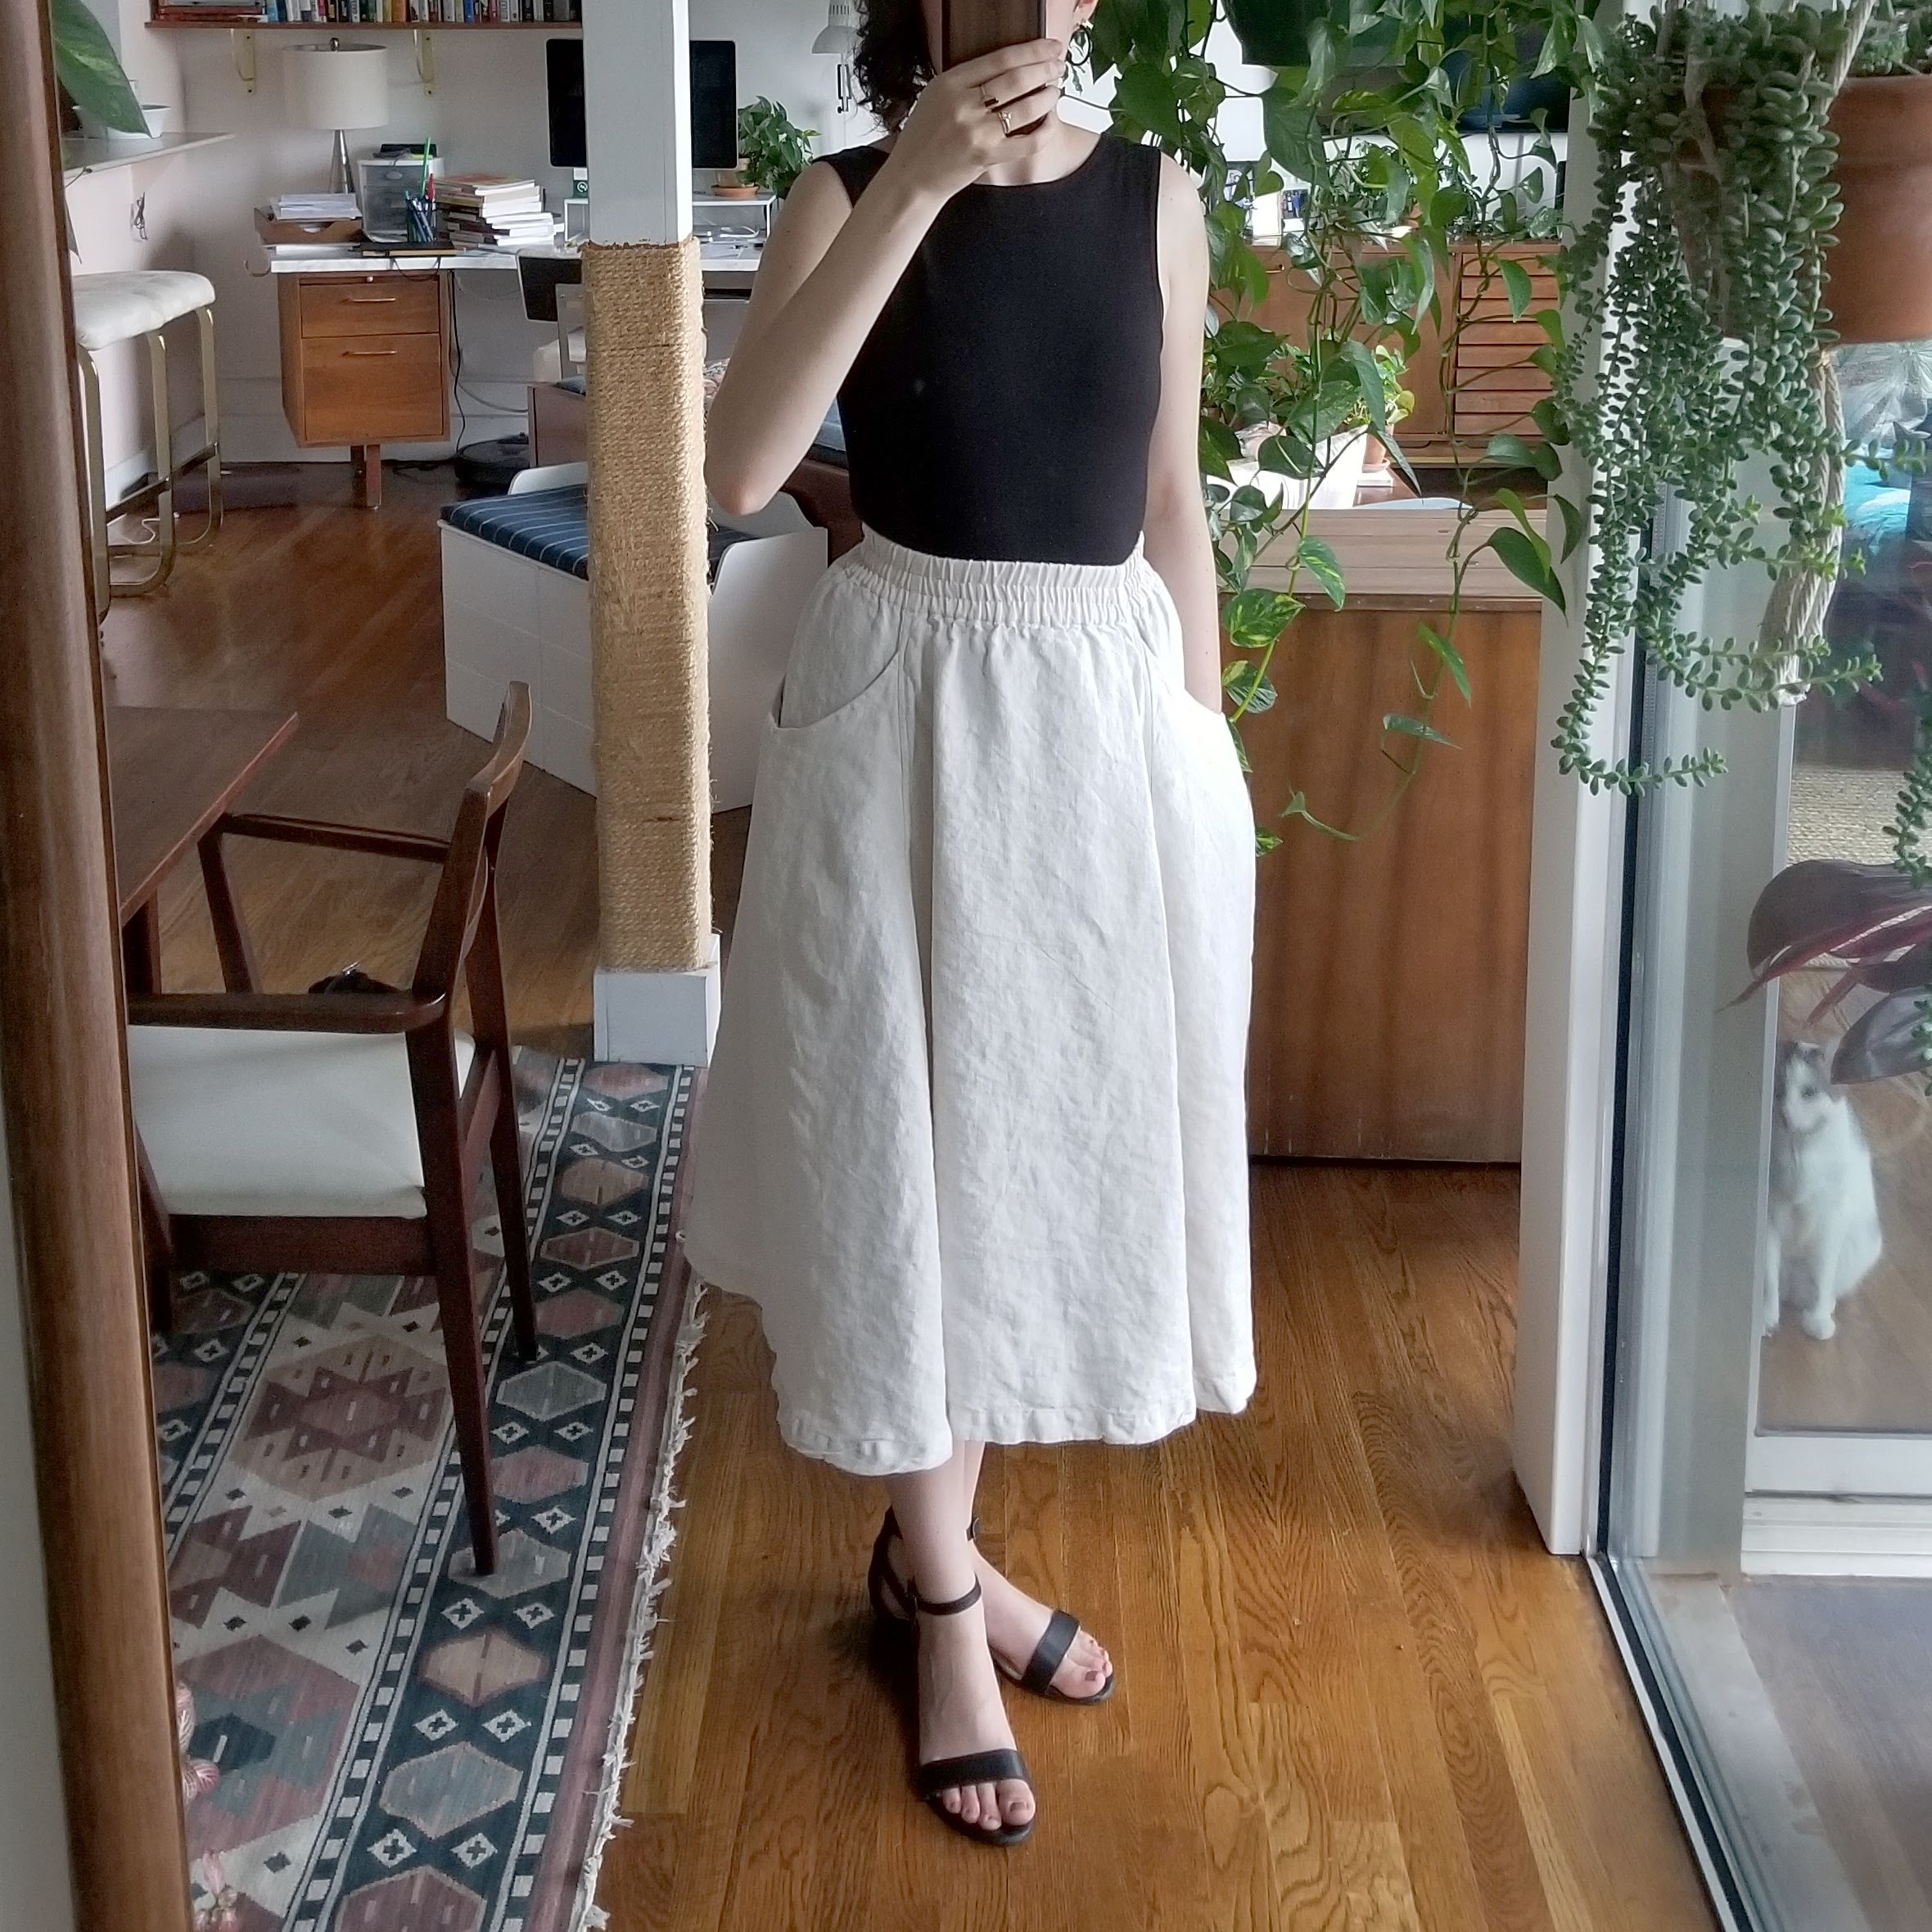 Tuesday - June 12, 2018First look at the Elizabeth Suzann clyde skirt I snapped up from Noishaf Bazaar last week. Loving the pockets and linen, unsure about the color and drape, but hopeful.